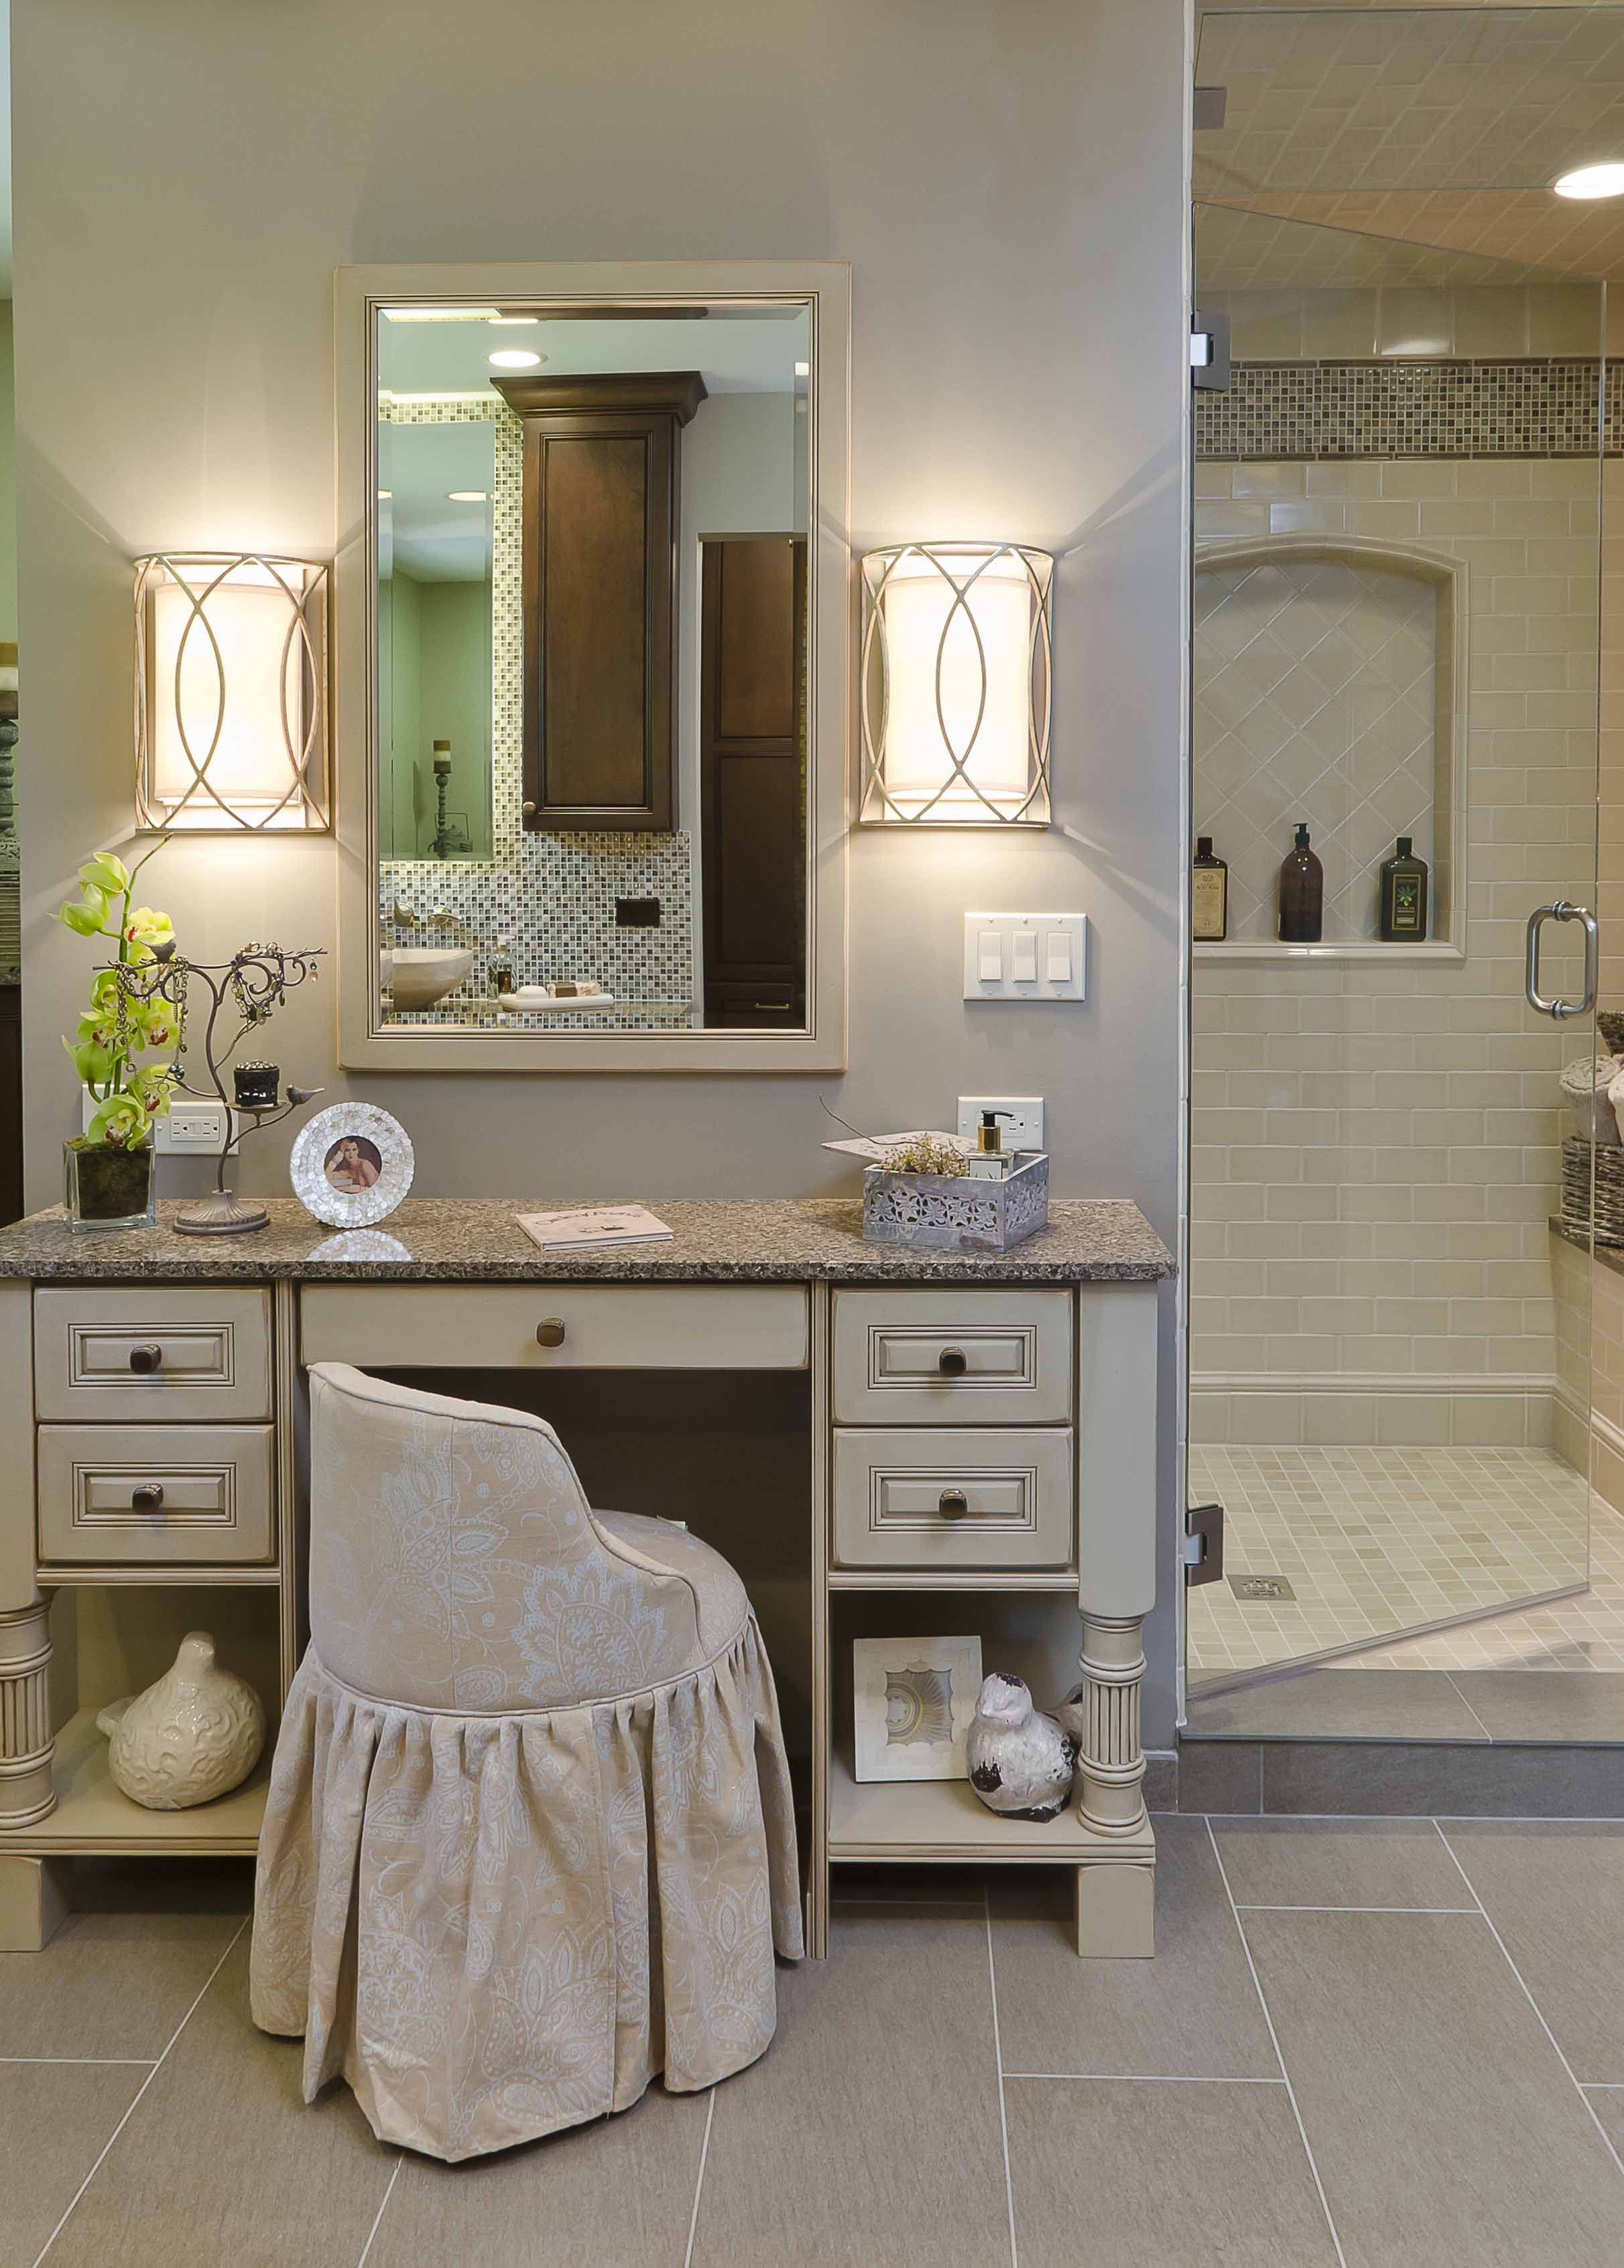 The Custom Make Up Cabinet Is Made By Dura Supreme Cabinetry Bathroom With Makeup Vanity Vanity Design Bedroom Vanity